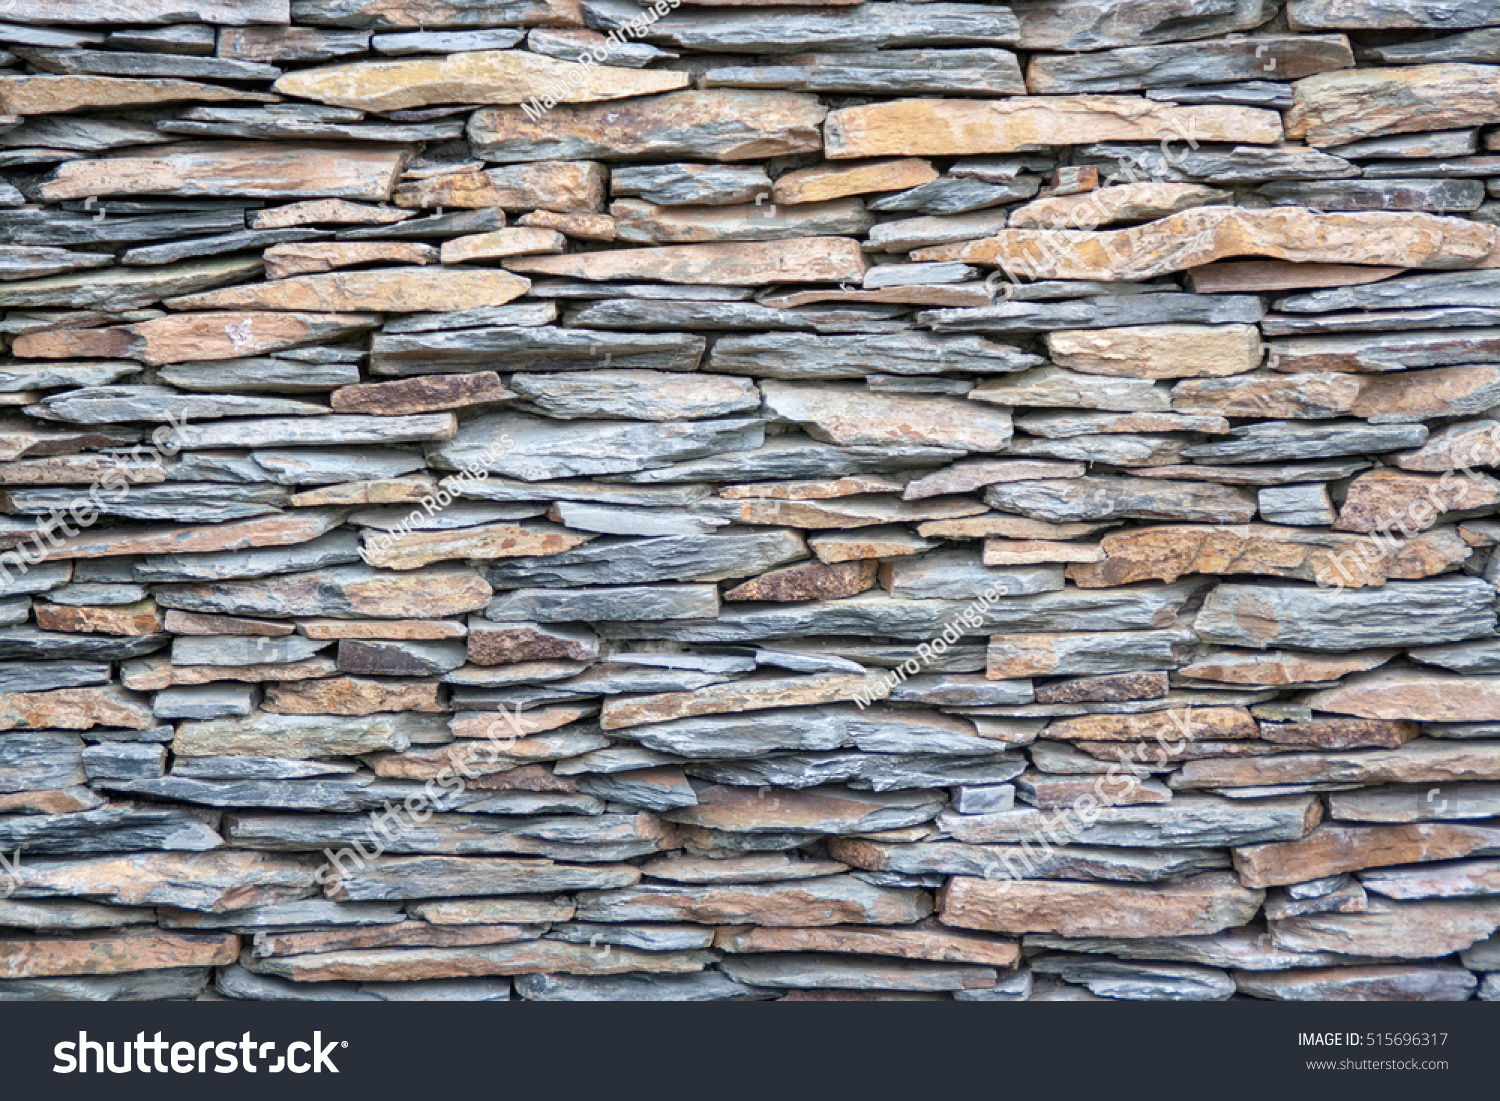 Schist Stones On House Piled Forming Stock Photo 515696317